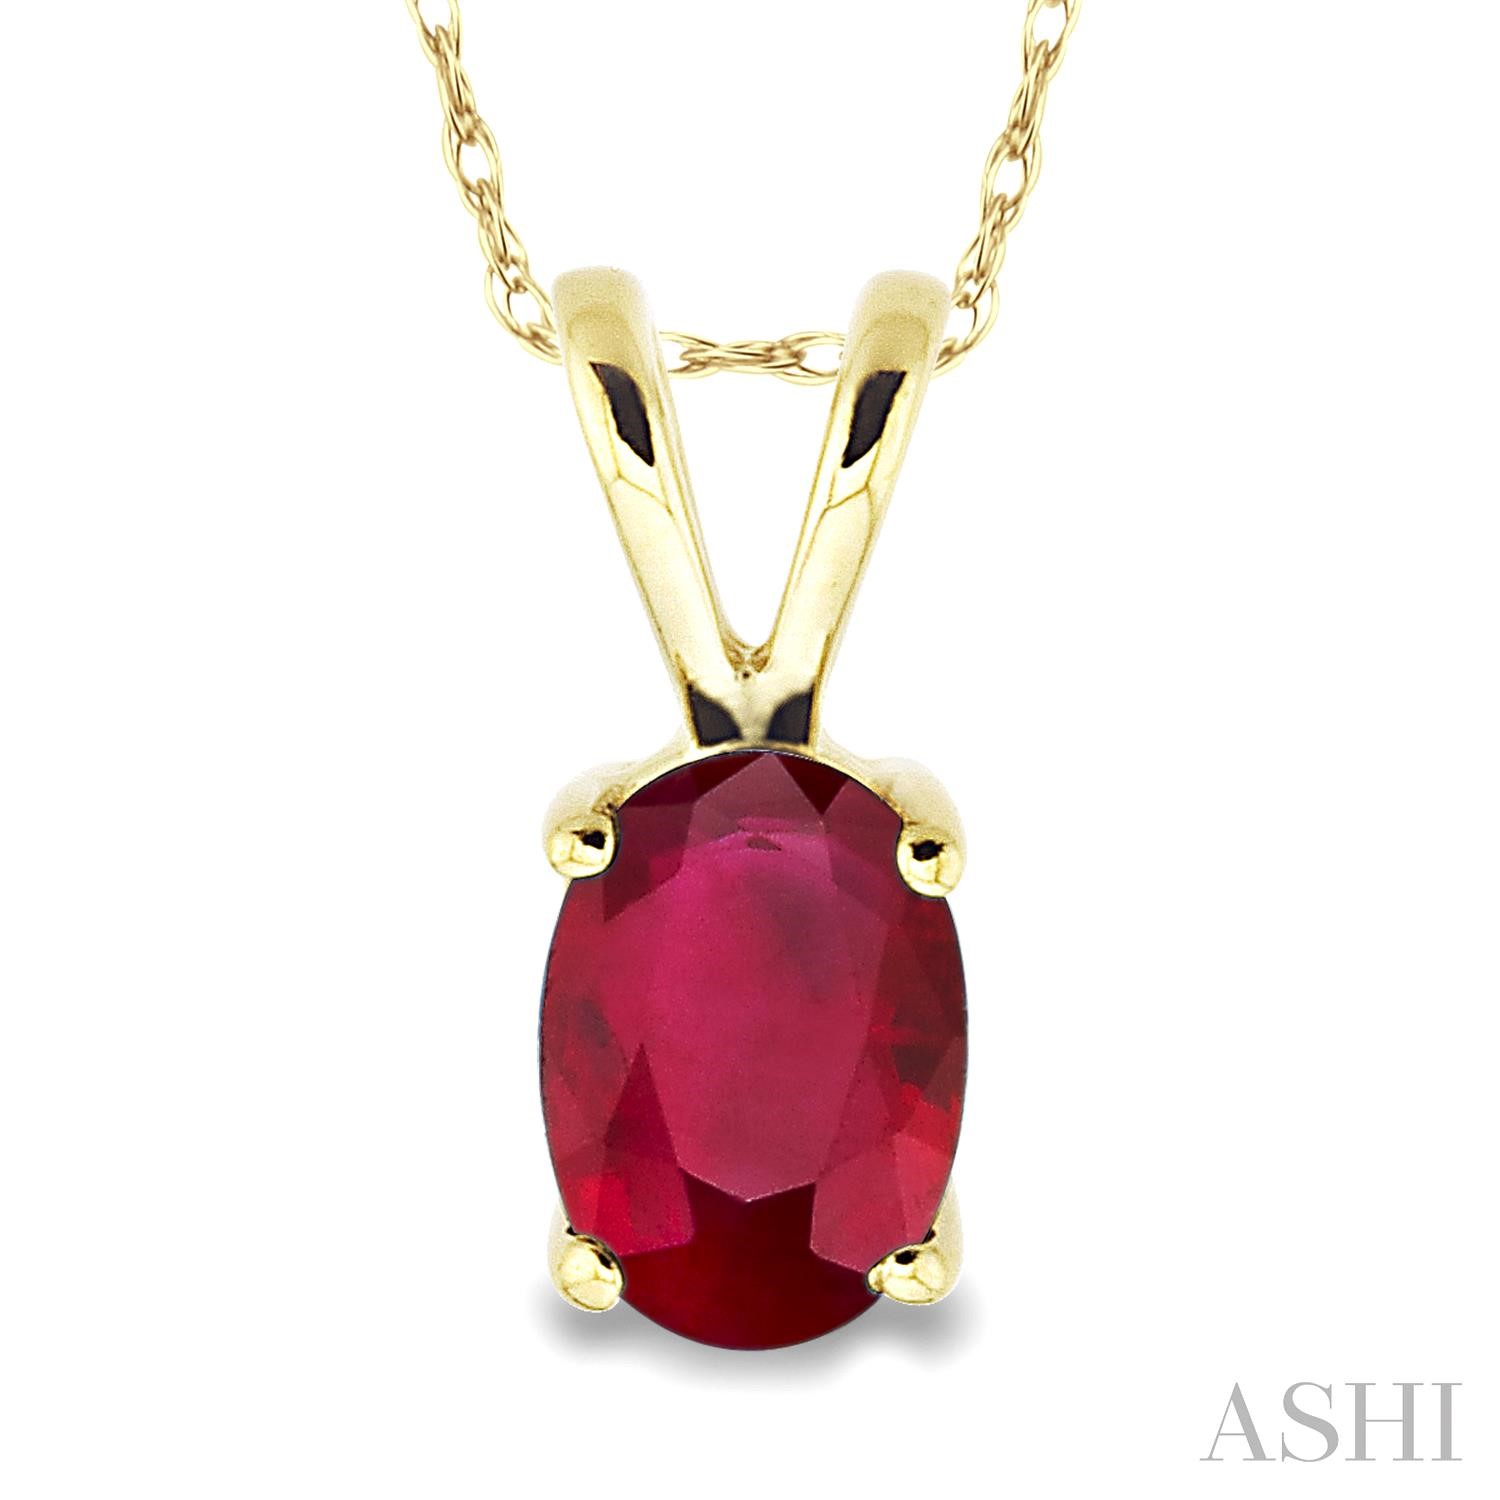 OVAL SHAPE STUD GEMSTONE PENDANT